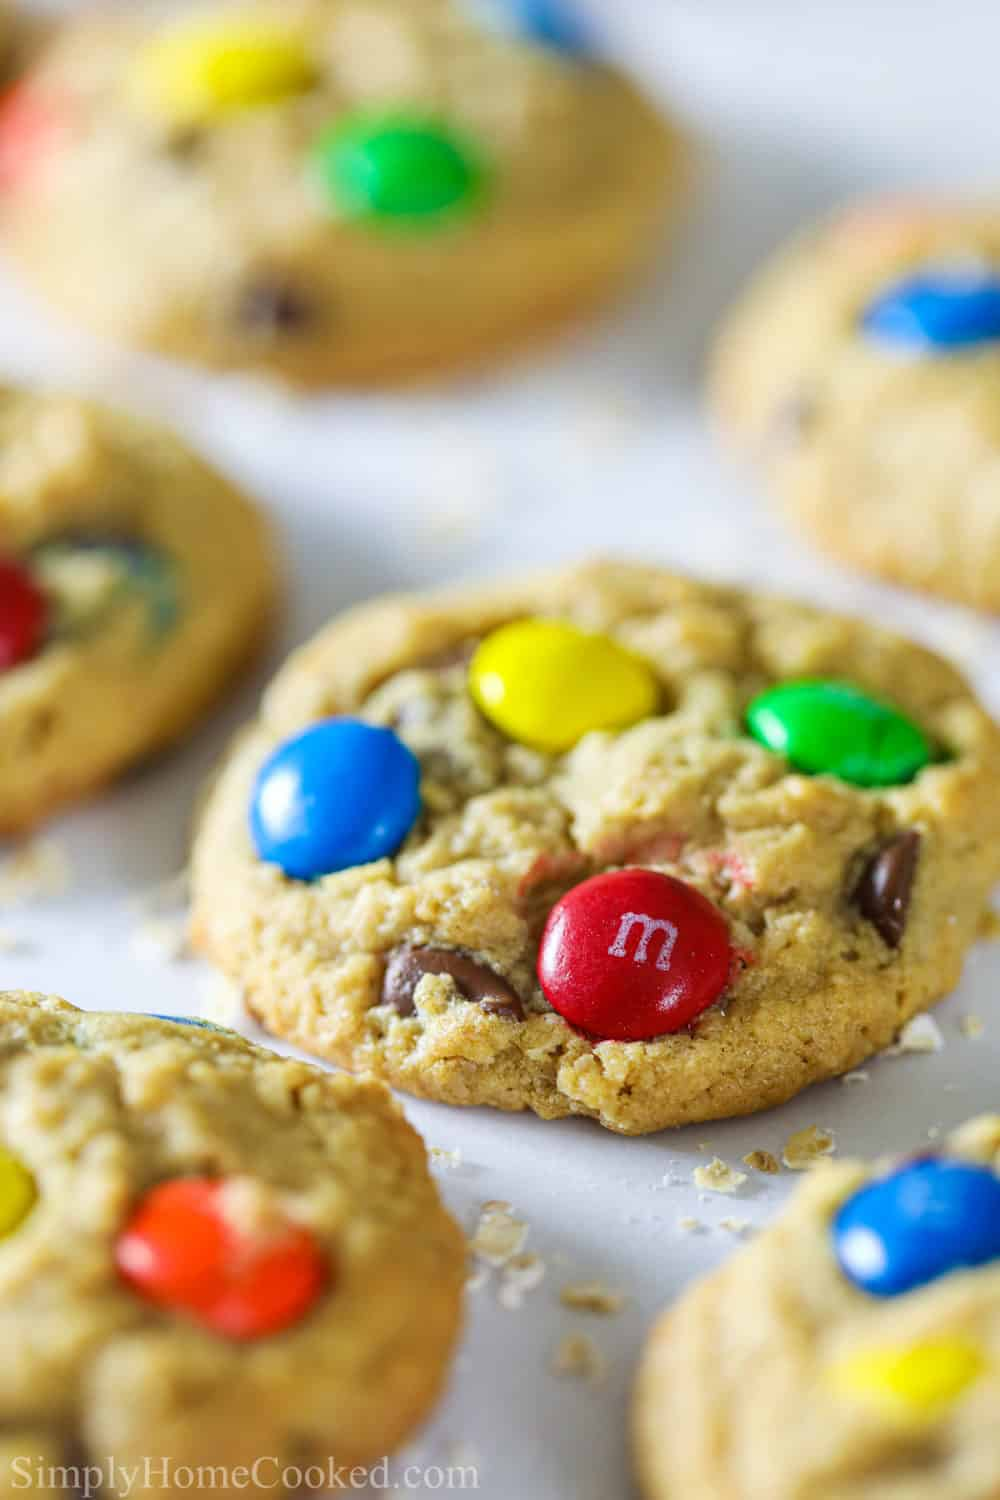 Close-up of monster cookie with M&Ms, with other monster cookies and crumbs in the background, sitting on white parchment paper.